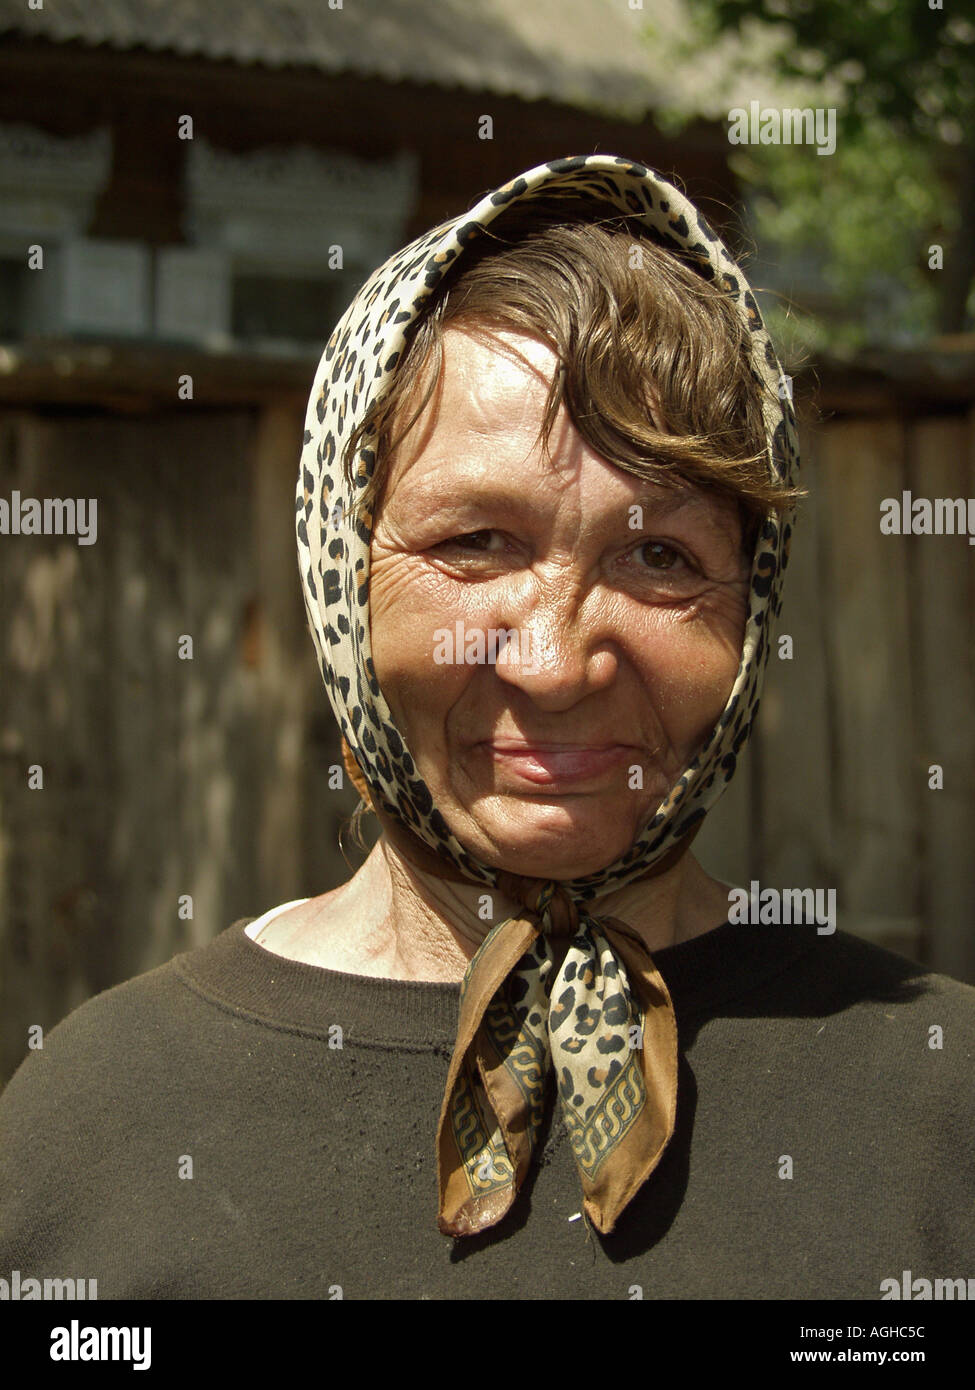 Portait of woman wearing headscarf, she is Samosely, a Chernobyl survivor aged 58, Chernobyl exclusion zone near Belarus Ukraine border - Stock Image